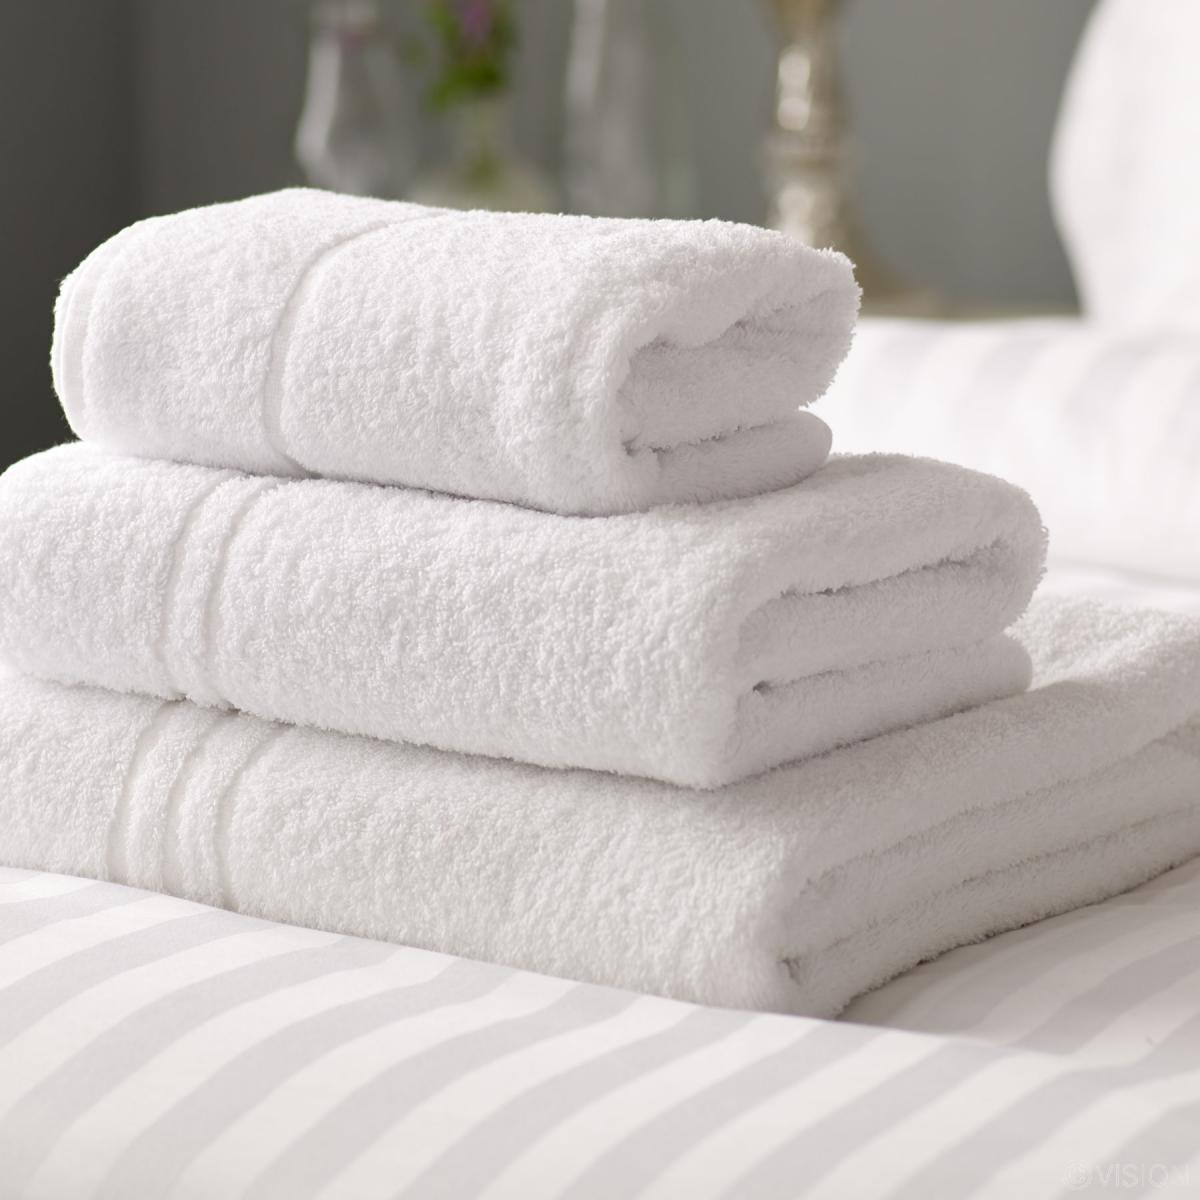 Super Soft 100 Cotton Bath Sheet Hotel Pure Luxury